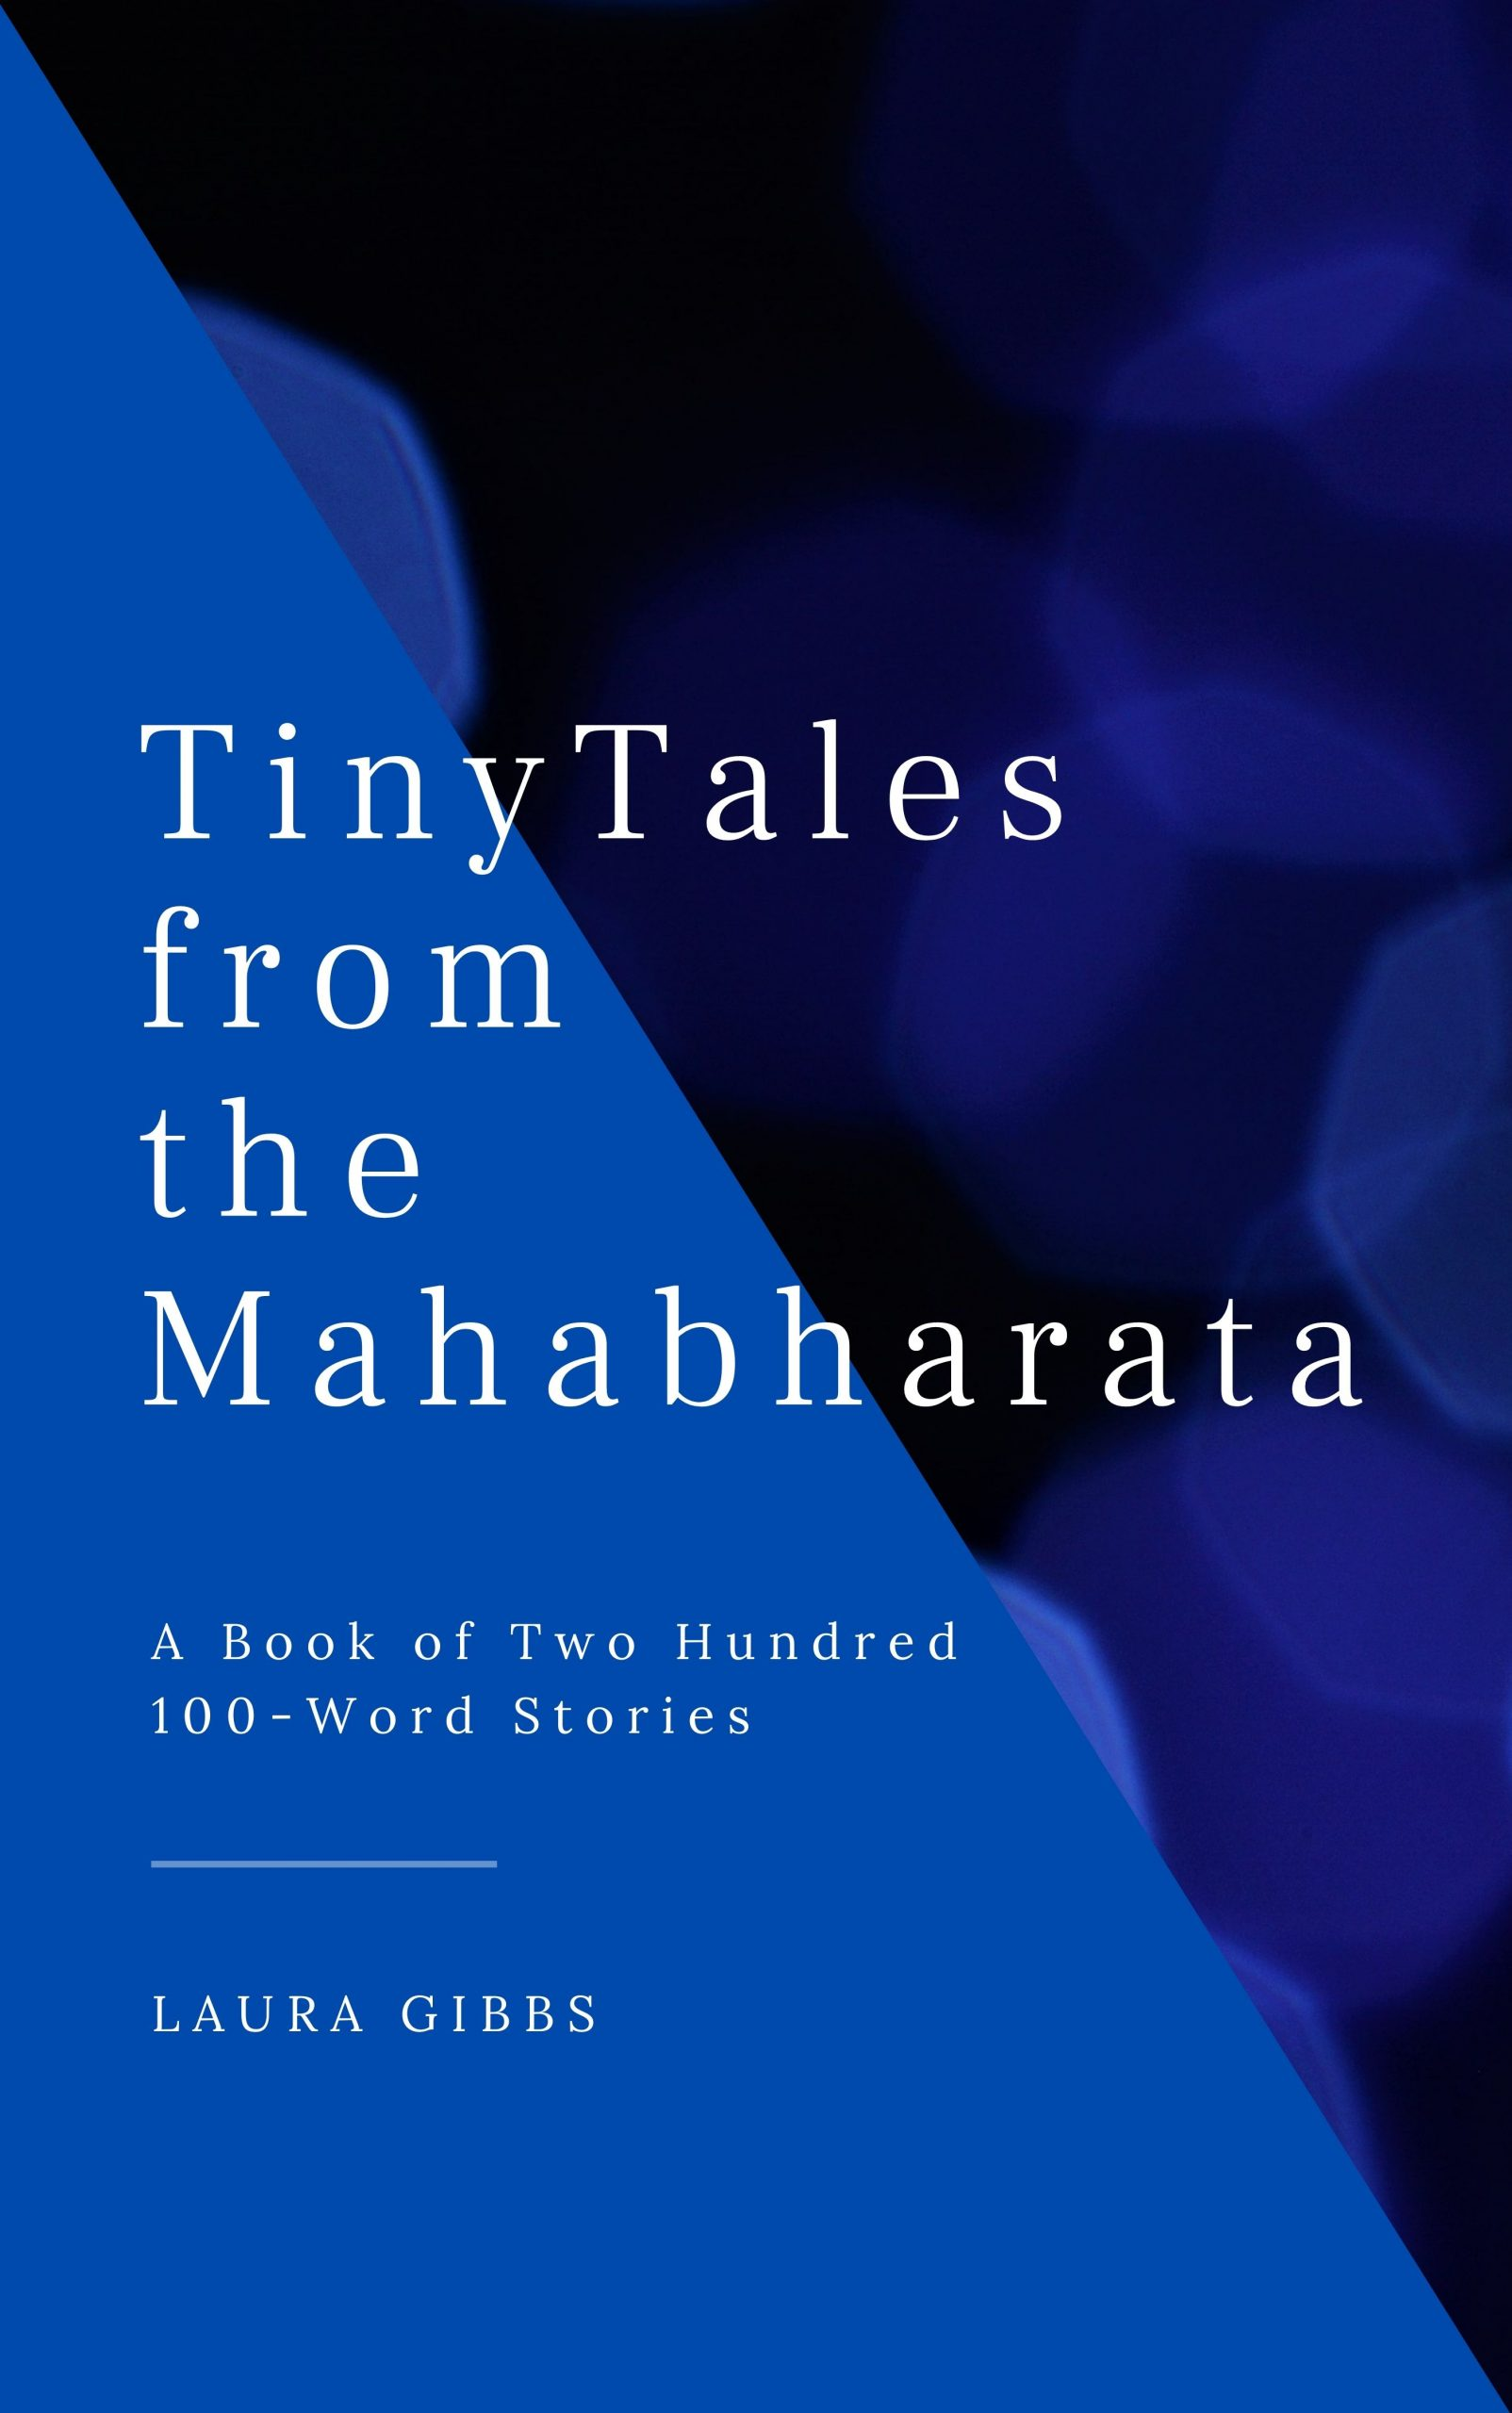 Cover image for Tiny Tales from the Mahabharata